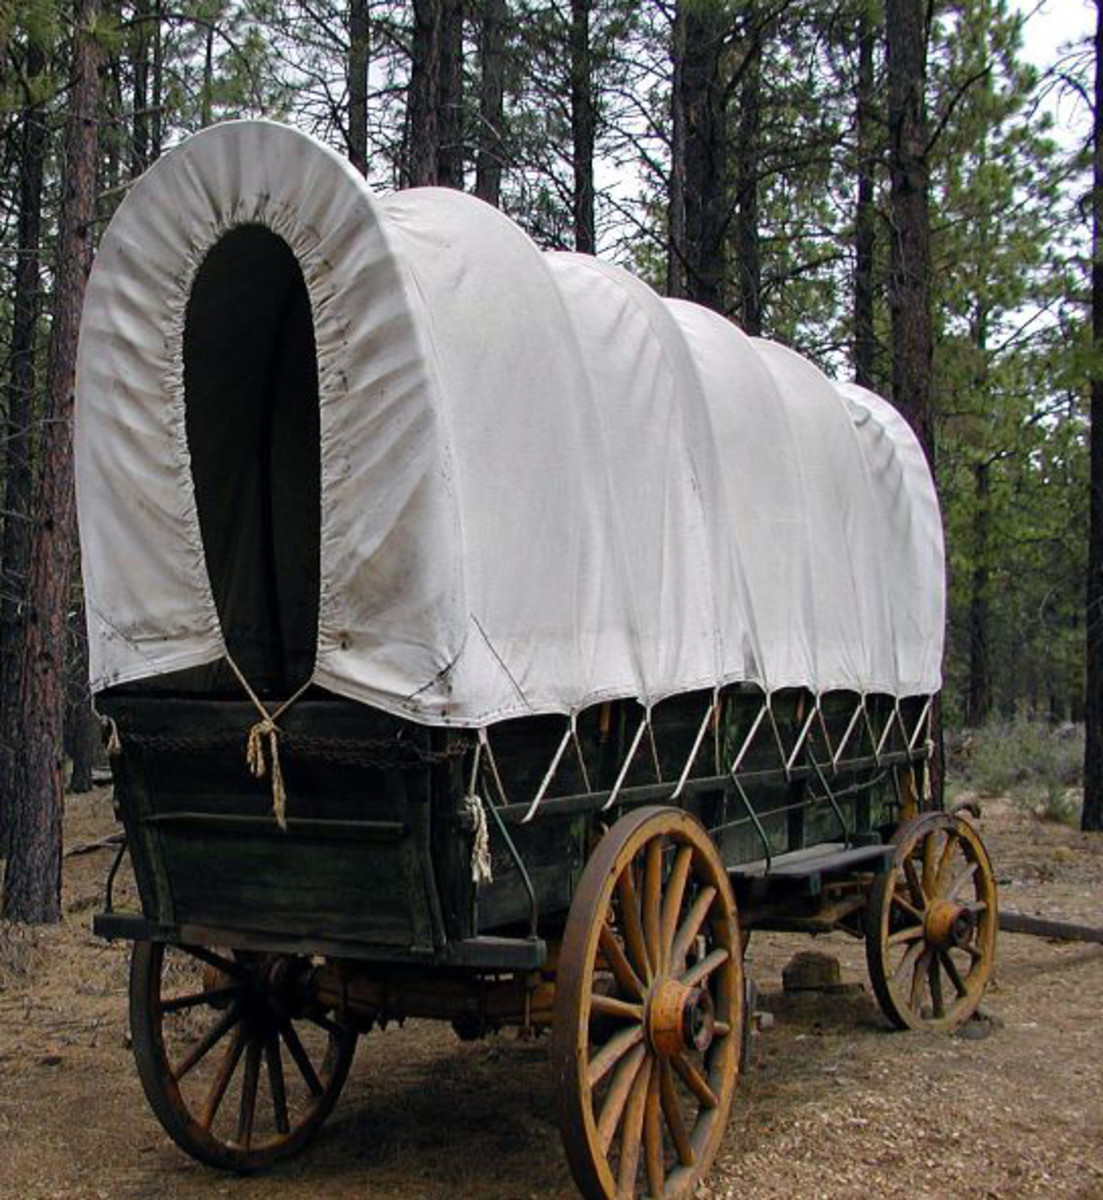 A farm wagon with hoops and canvas top